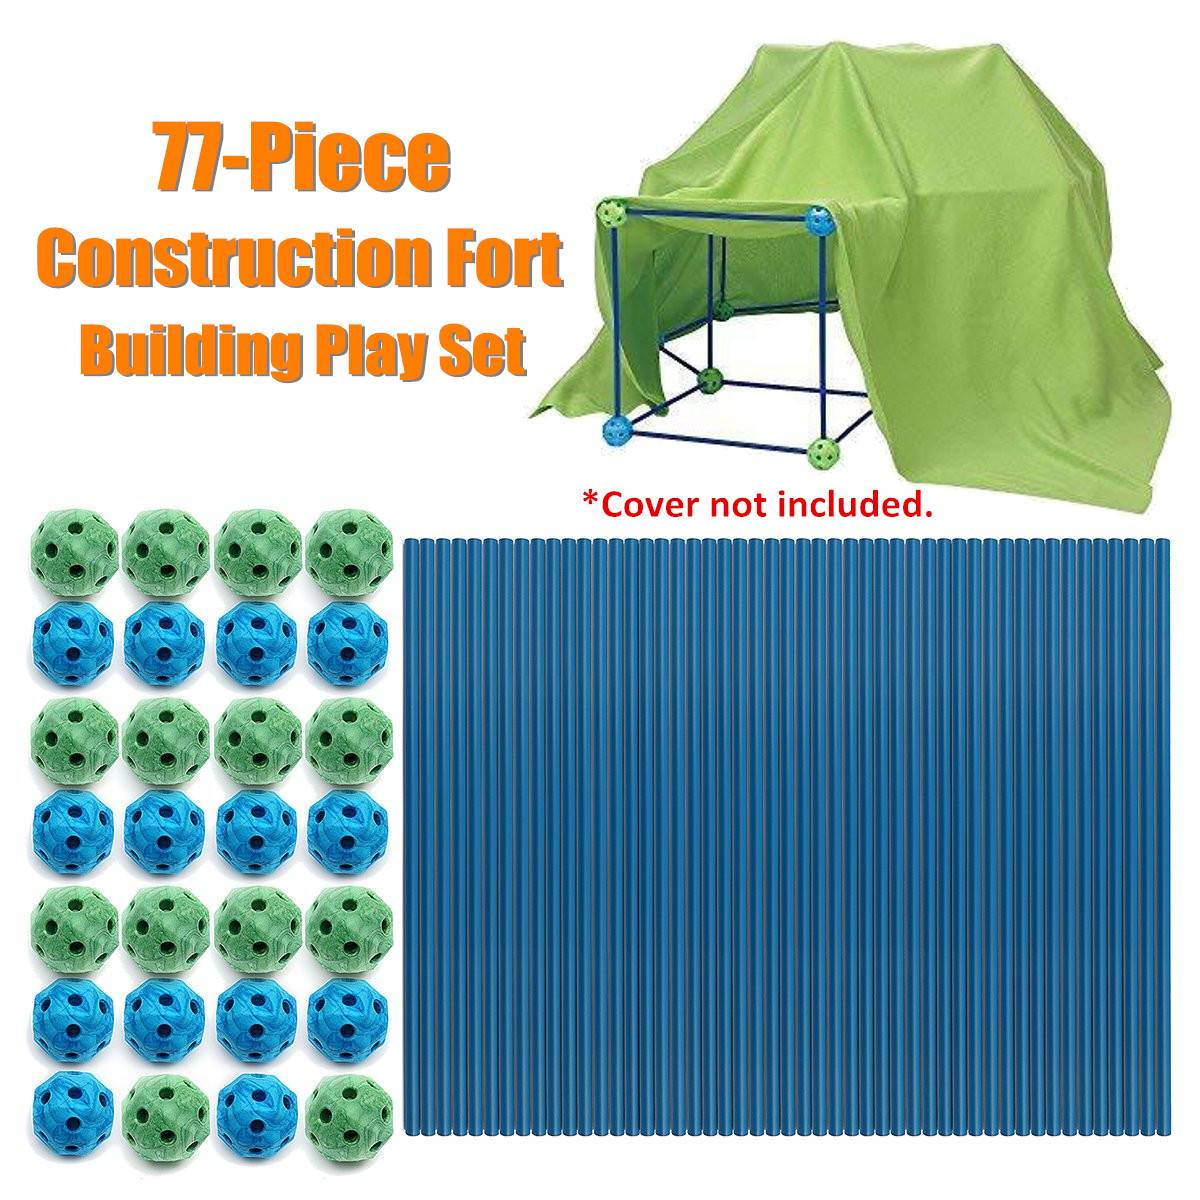 72 Piece Build Construction Fort Baby Toy Tents for Kids Castle Play Tent House Furniture Children Enfant Room Play Toys Pool72 Piece Build Construction Fort Baby Toy Tents for Kids Castle Play Tent House Furniture Children Enfant Room Play Toys Pool